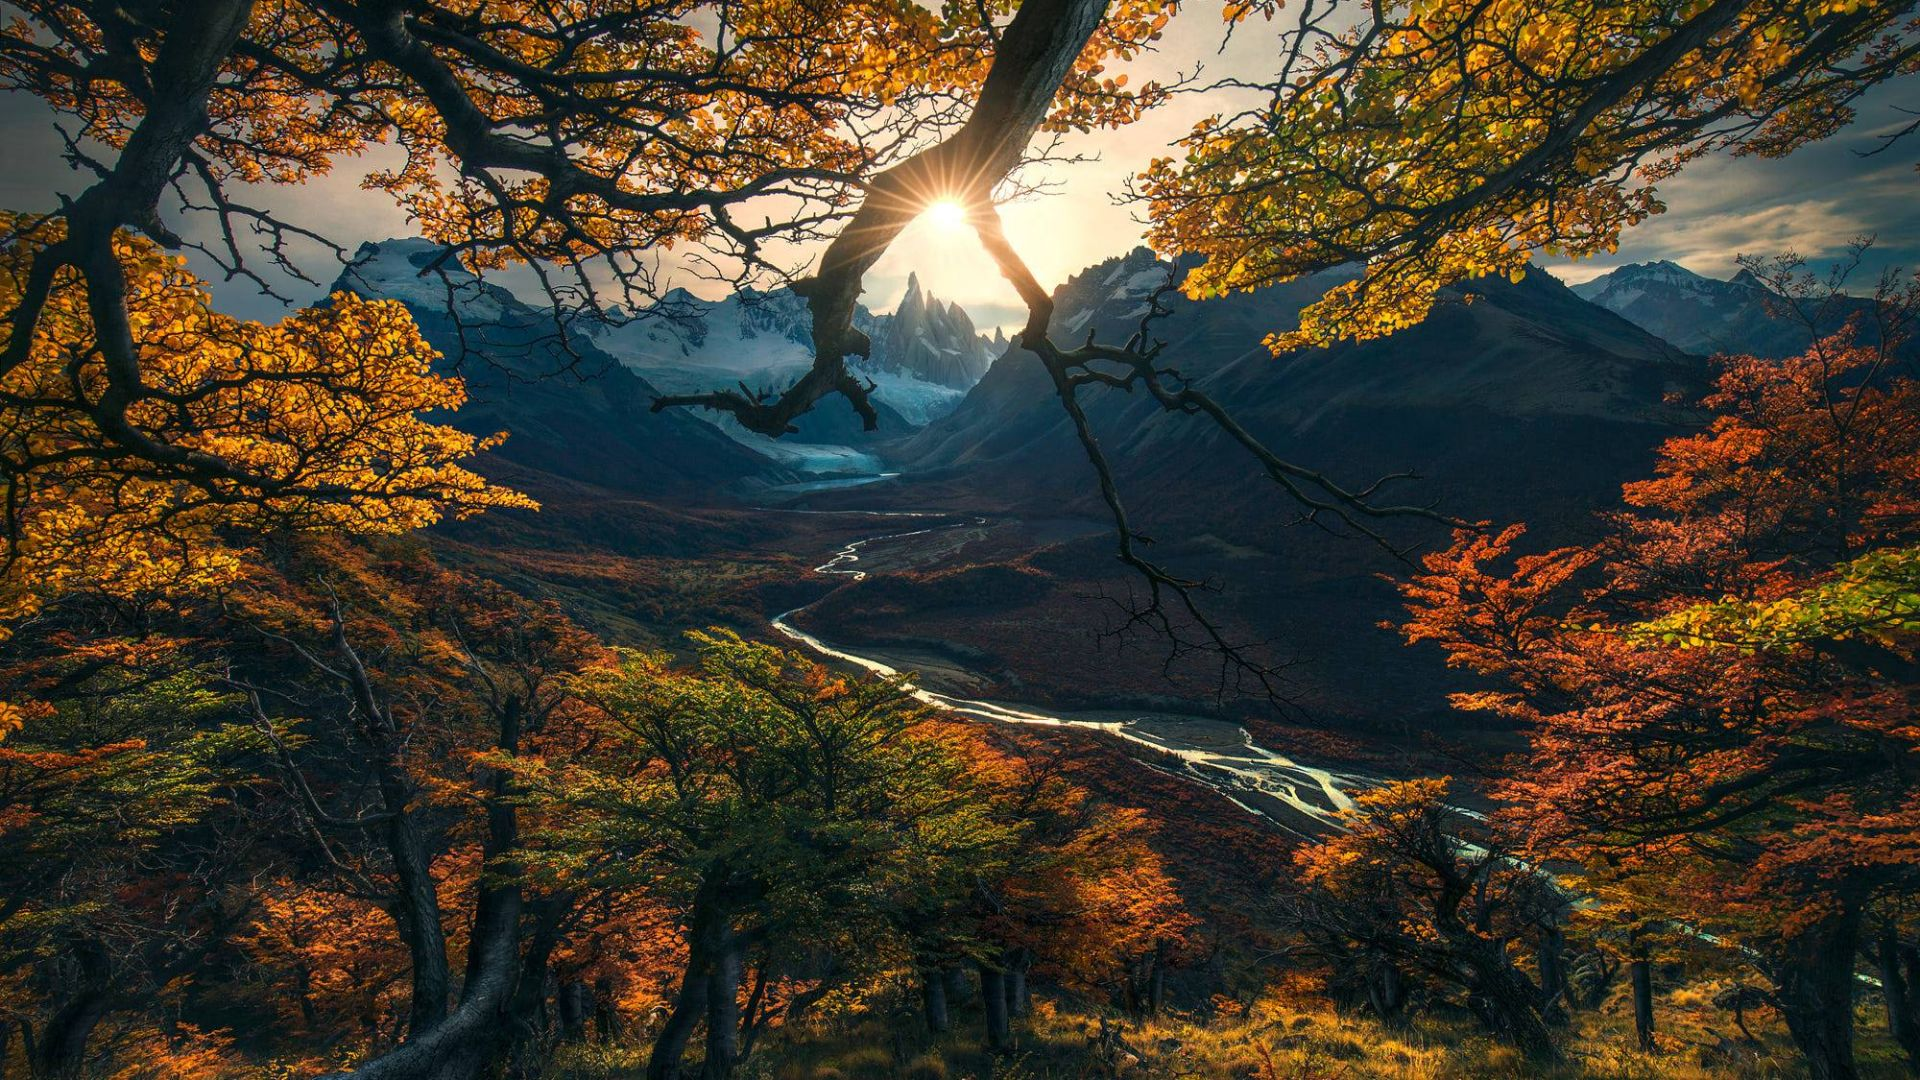 лес, дерево, горы, осень, forest, tree, mountains, autumn, HD (horizontal)